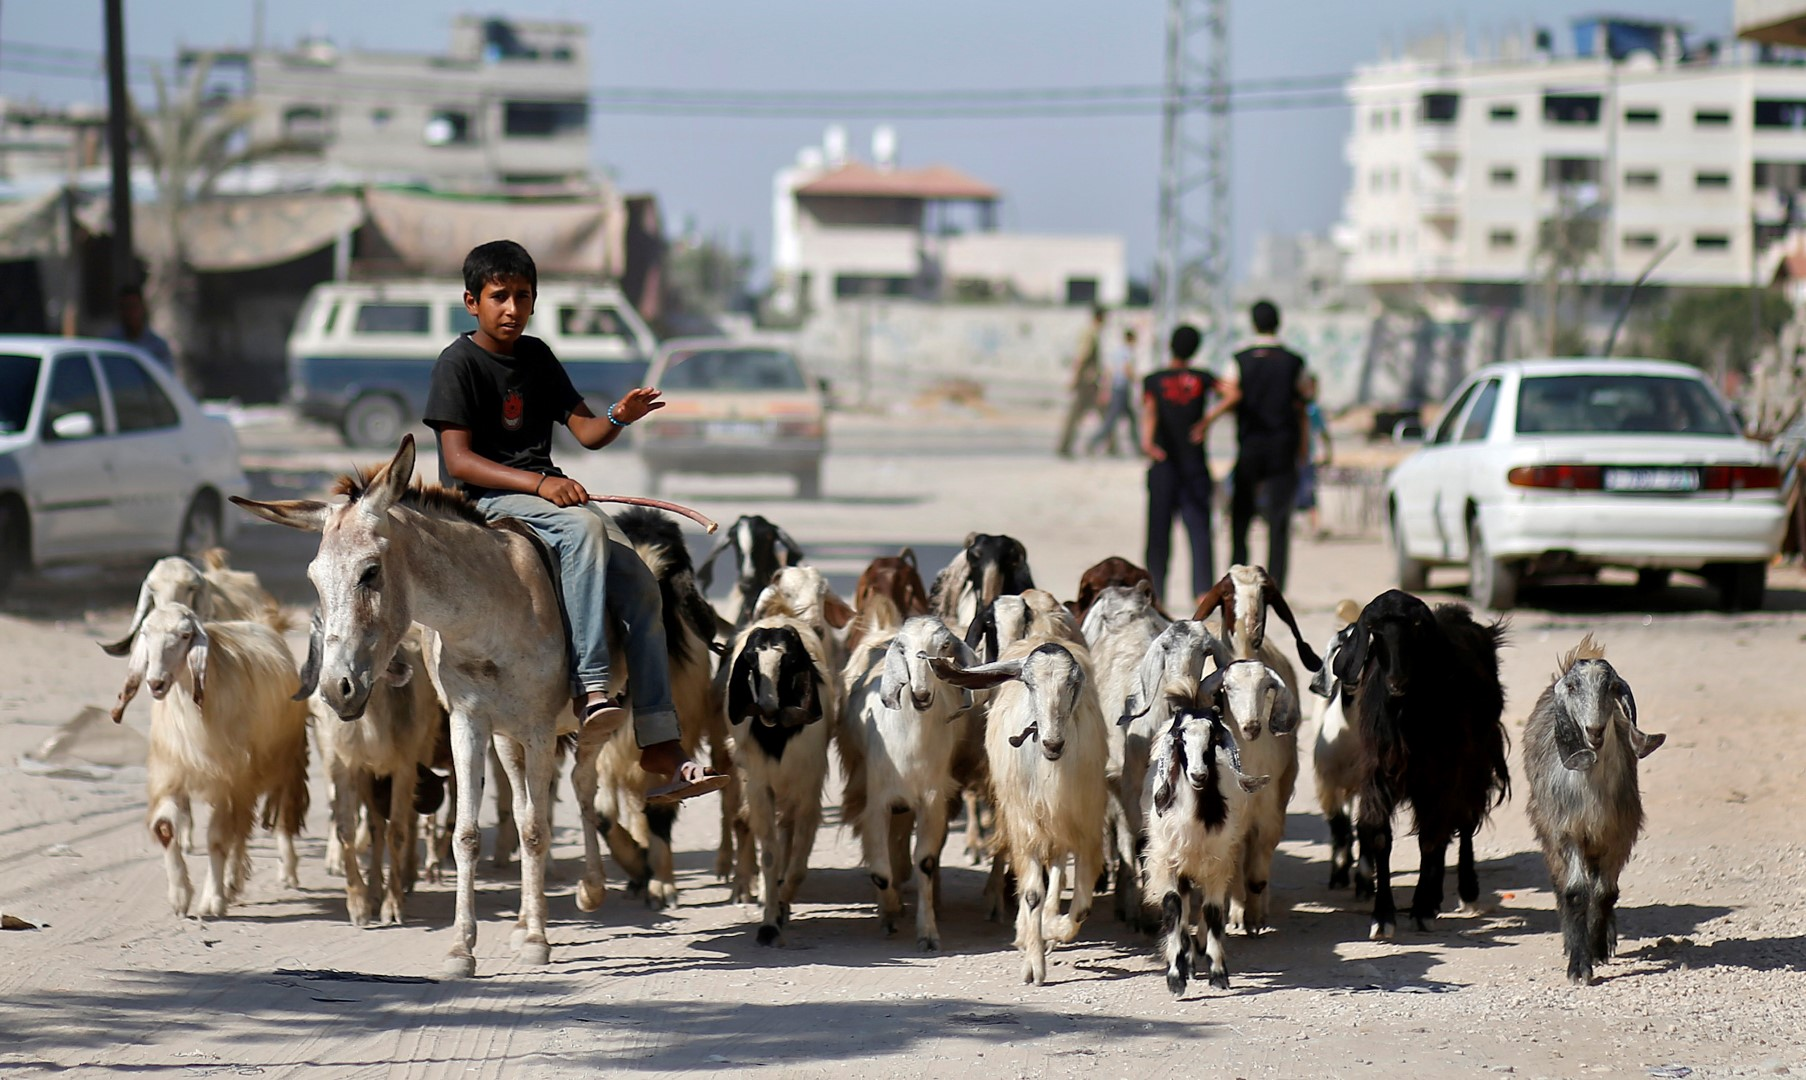 A Palestinian boy rides a donkey as he herds goats in the northern Gaza Strip June 24, 2013. REUTERS/Mohammed Salem (GAZA - Tags: SOCIETY ANIMALS) - GM1E96P071B01